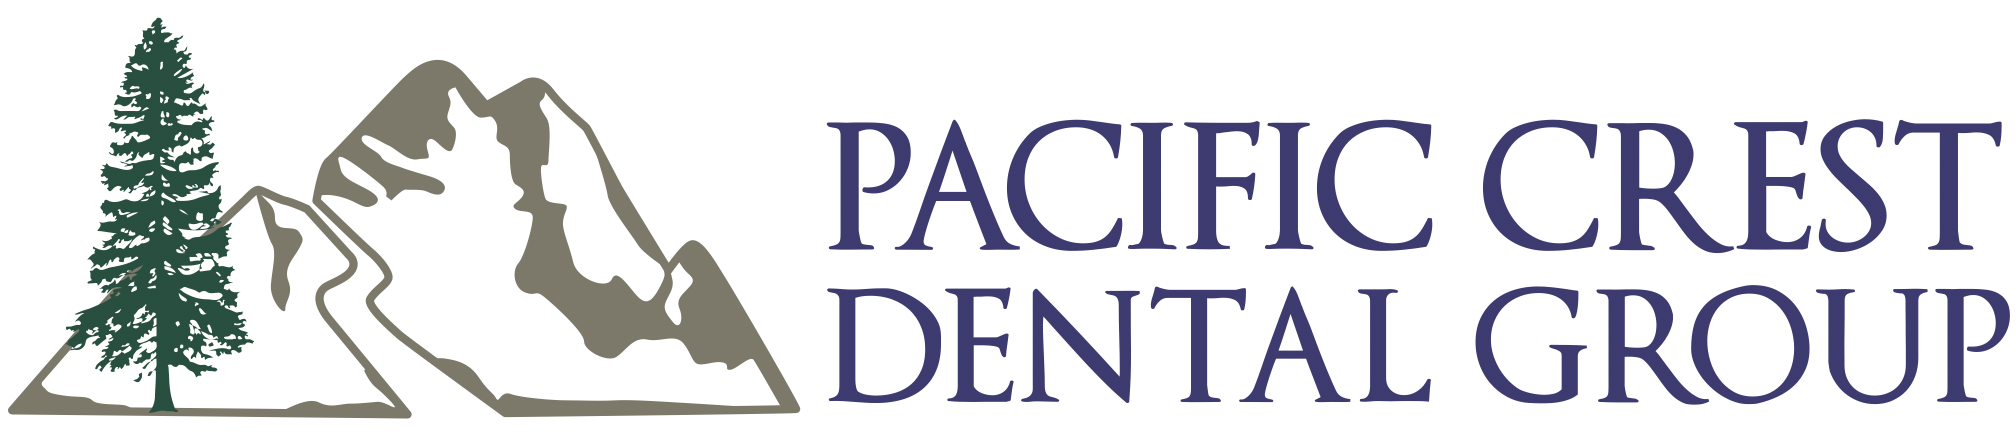 Pacific Crest Dental Group